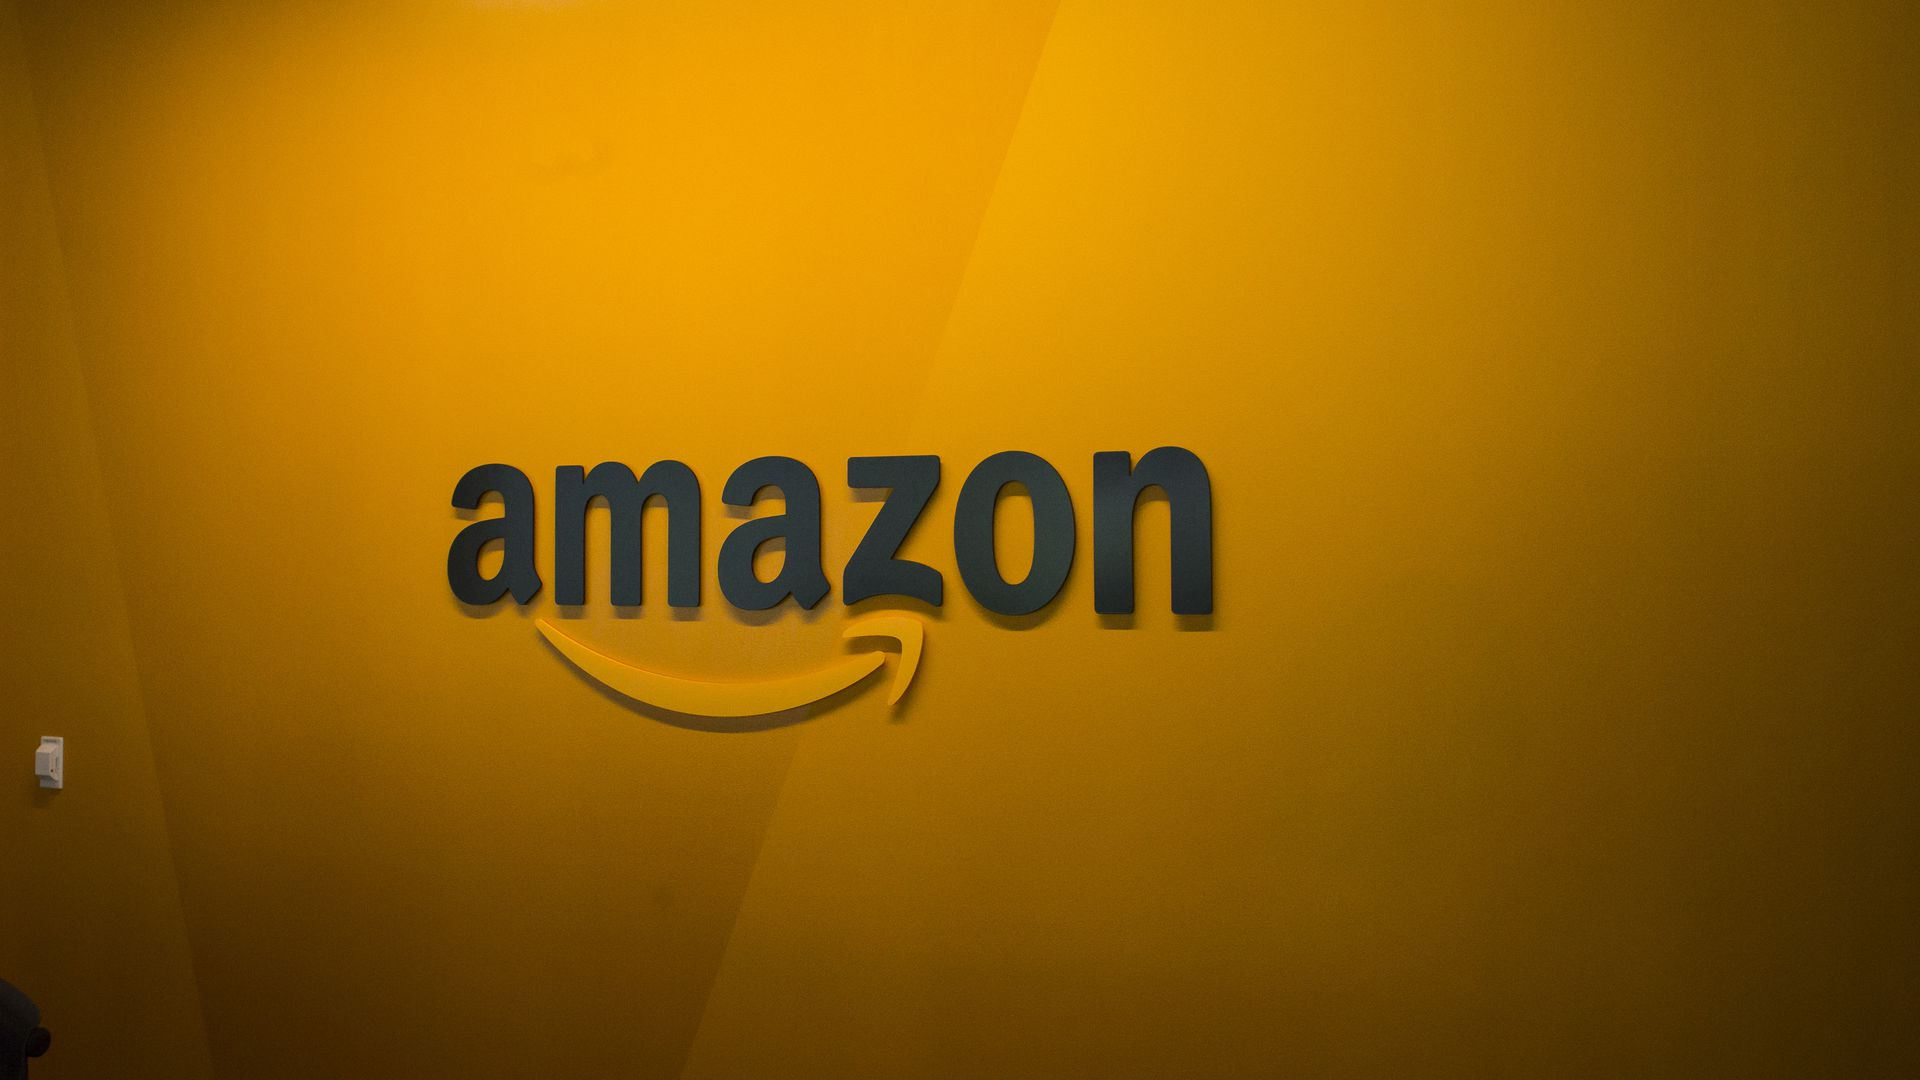 Photo of the Amazon.com logo.